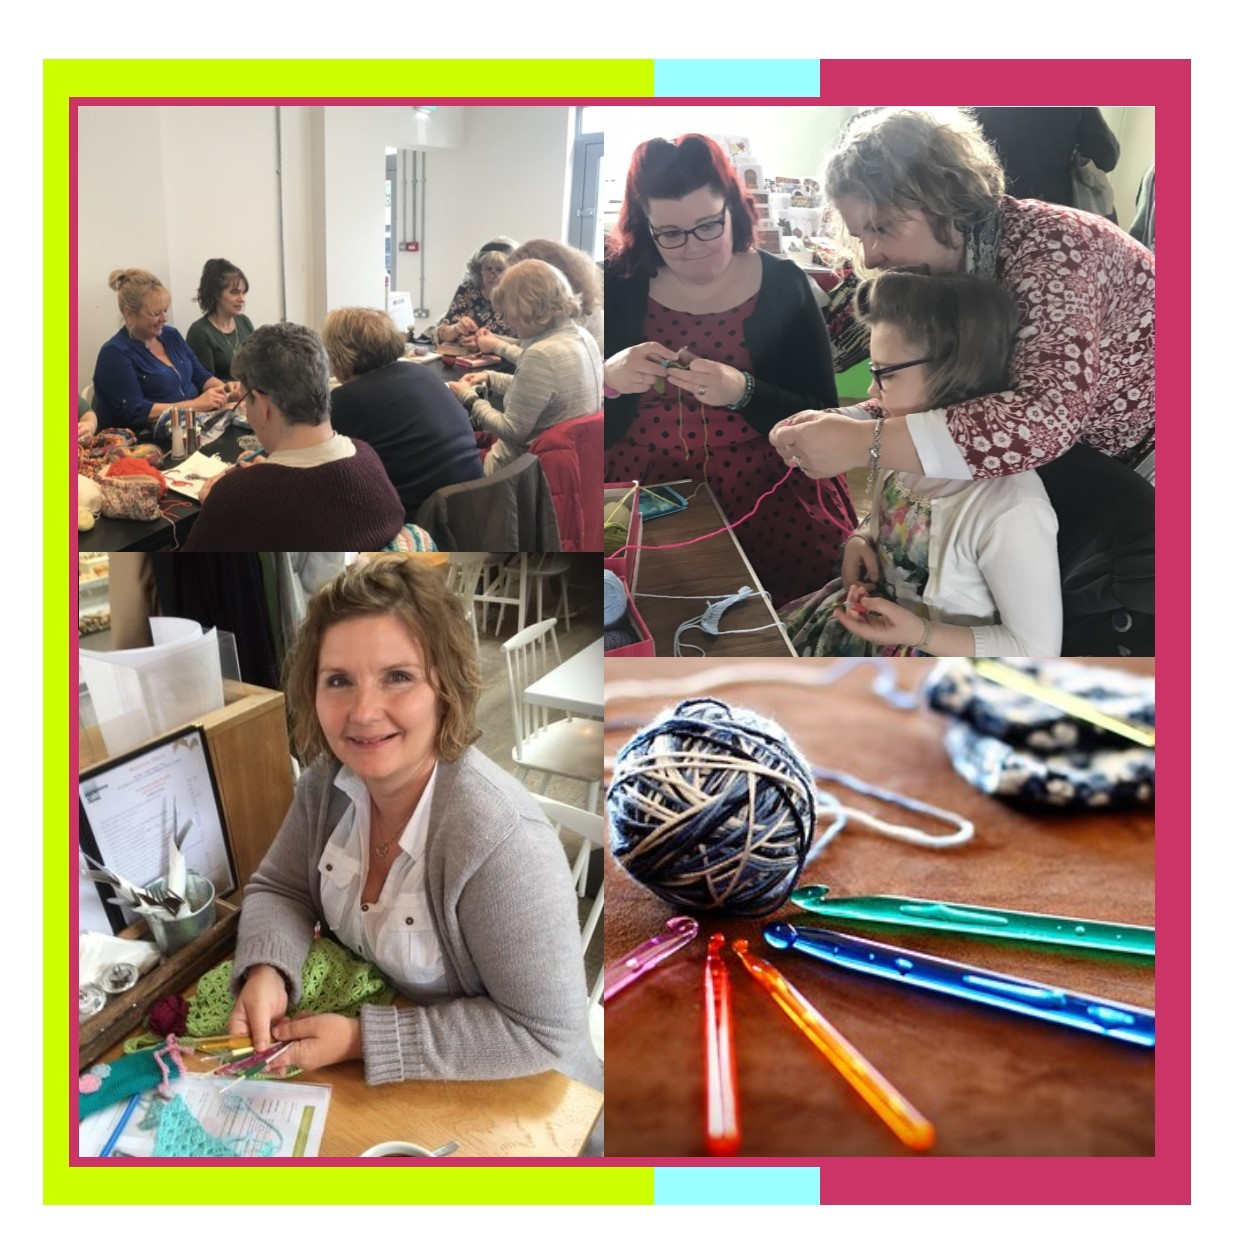 Learn_it - crochet classes and workshops in Eltham (Borough of Greenwich, South East London)